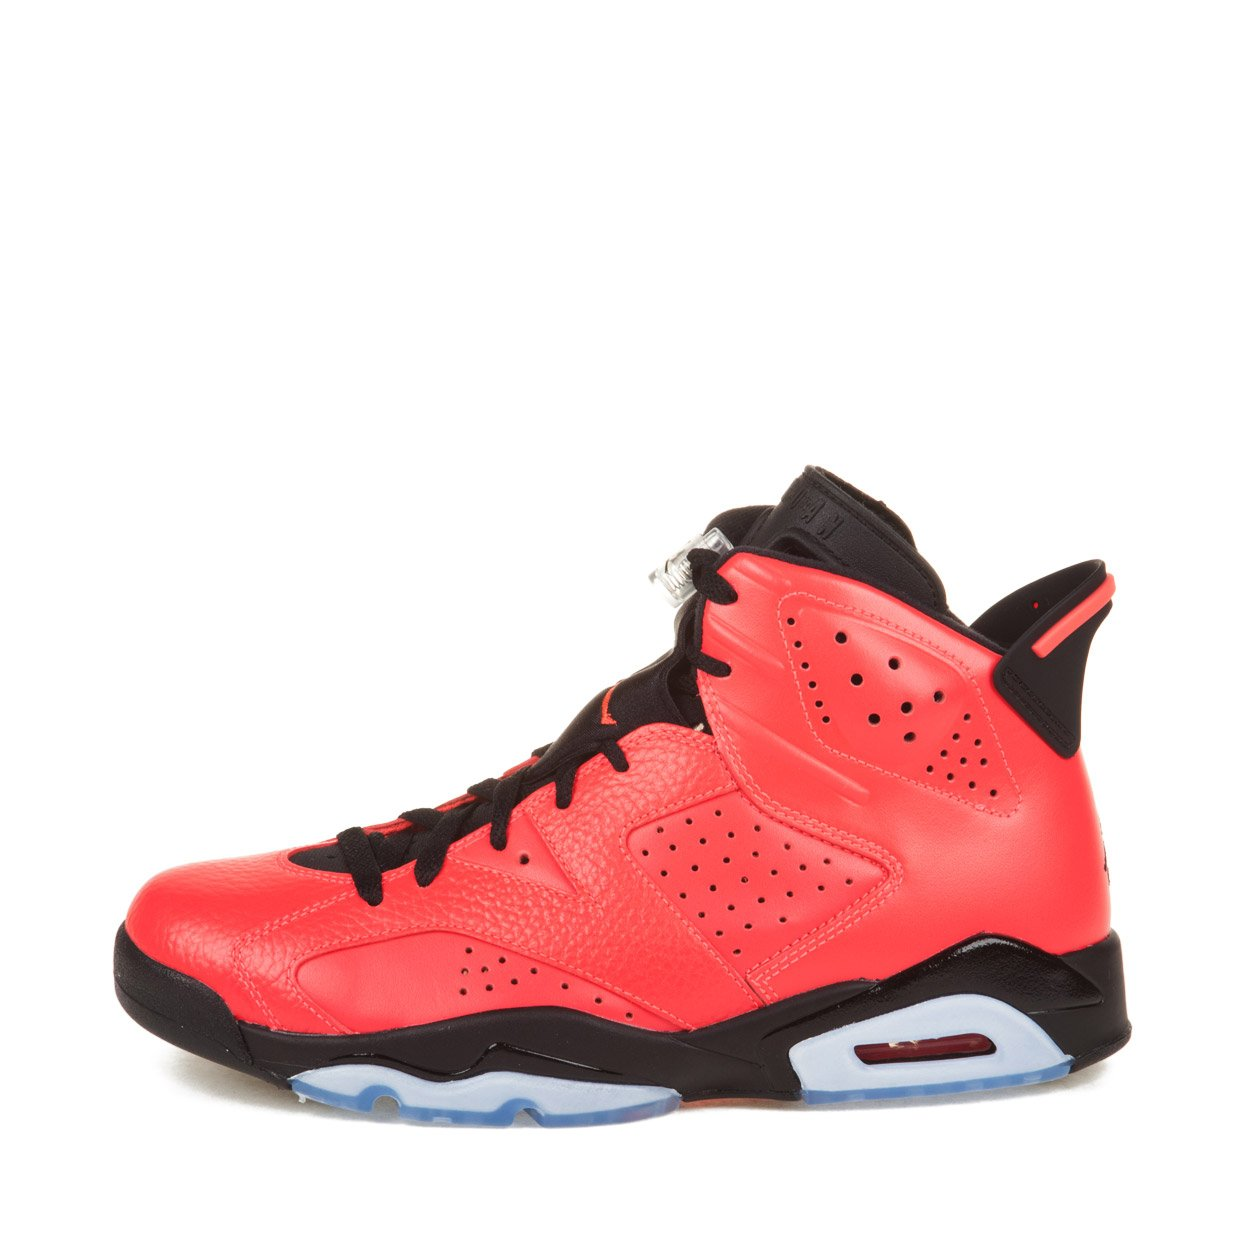 cheap for discount d8879 b43b2 Galleon - Nike Mens Air Jordan 6 Retro